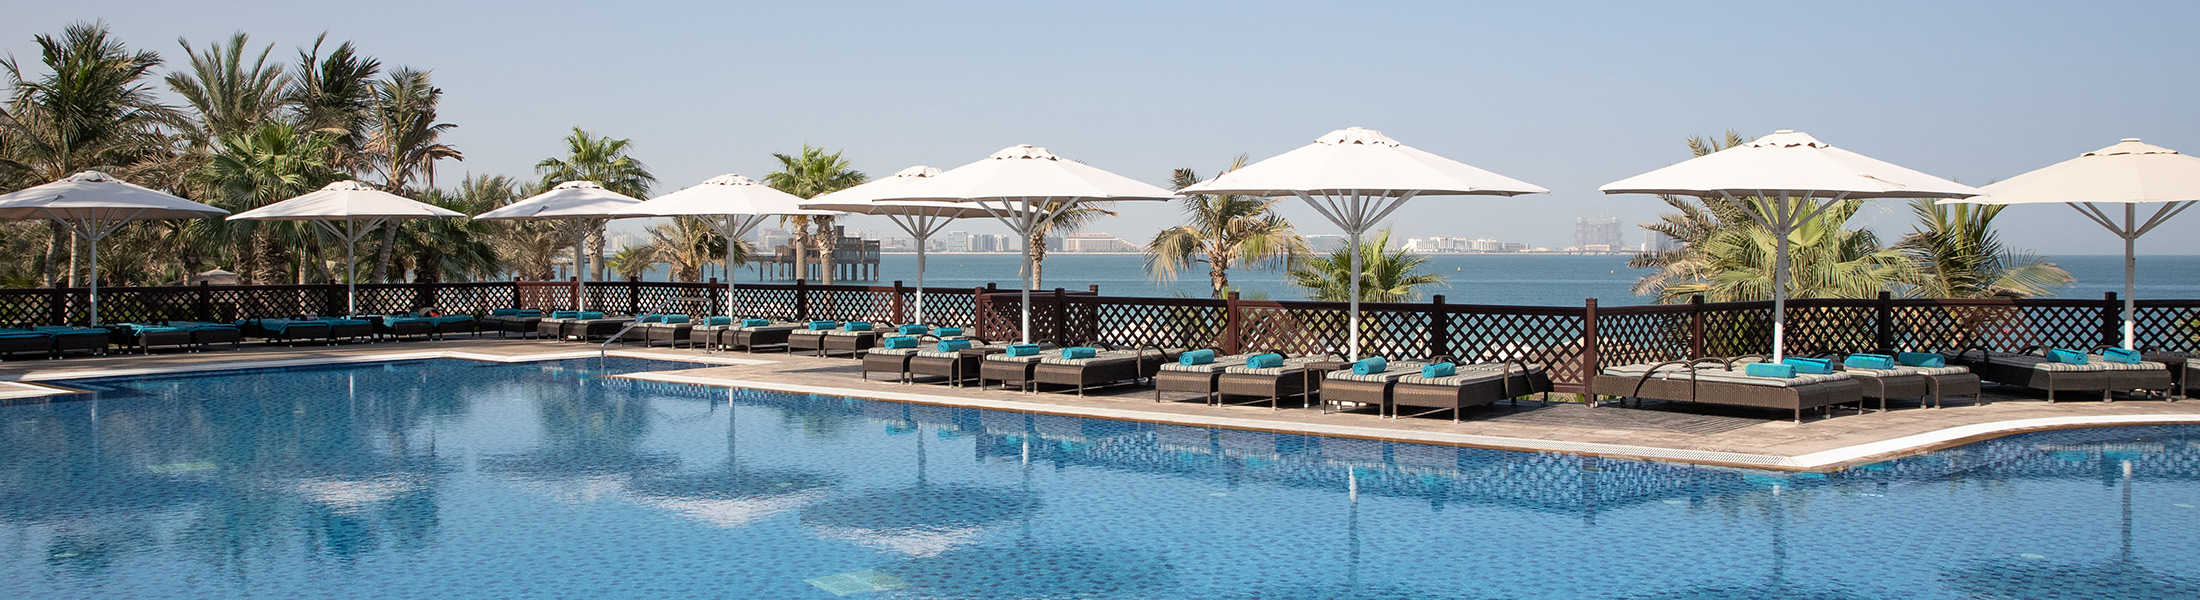 Pool with sun loungers at Jumeirah Mina A'Salam